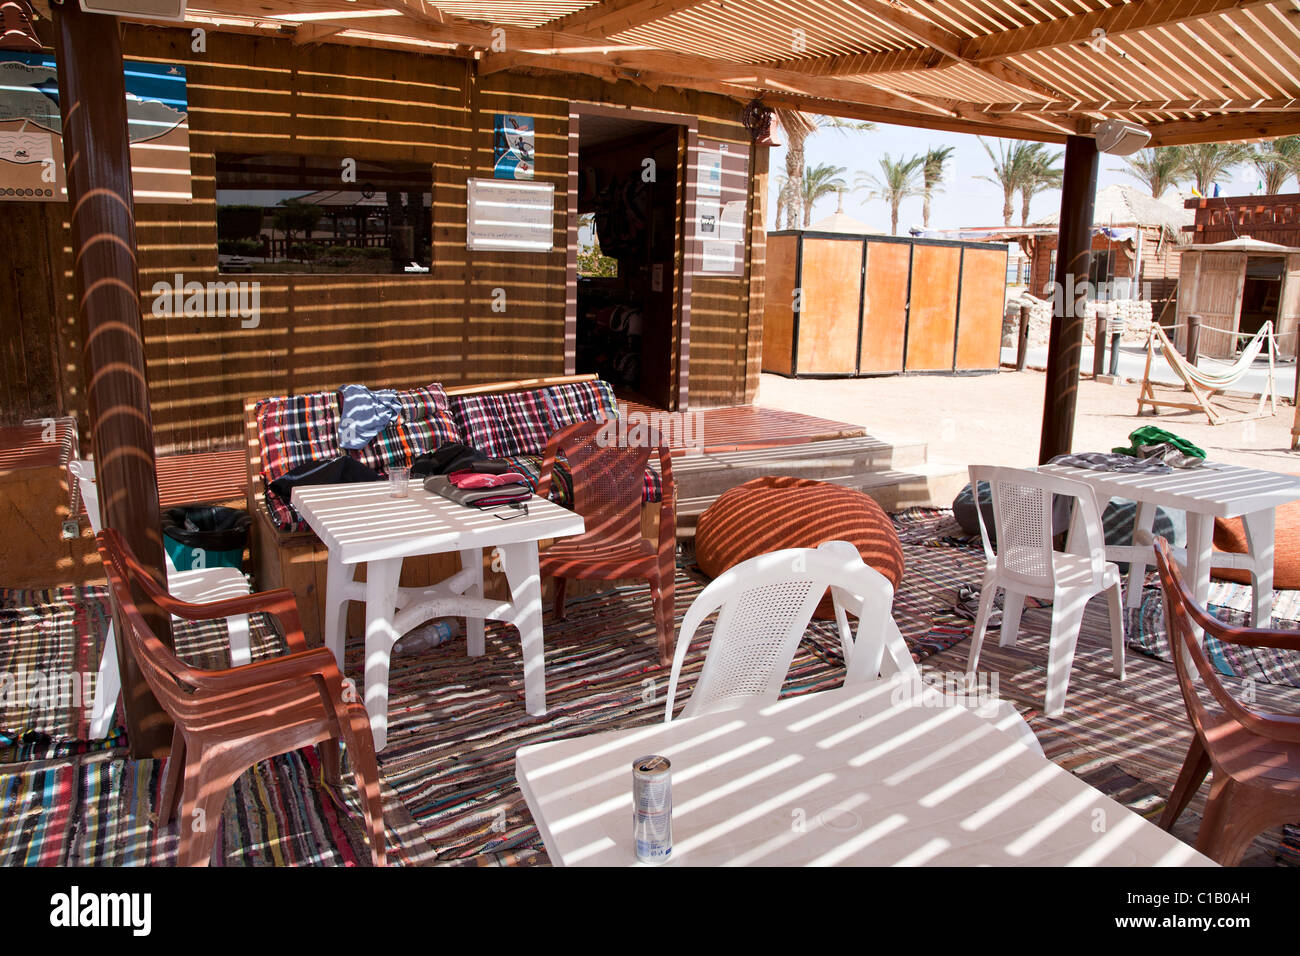 Chill out area outside the Kite Junkies huts. - Stock Image